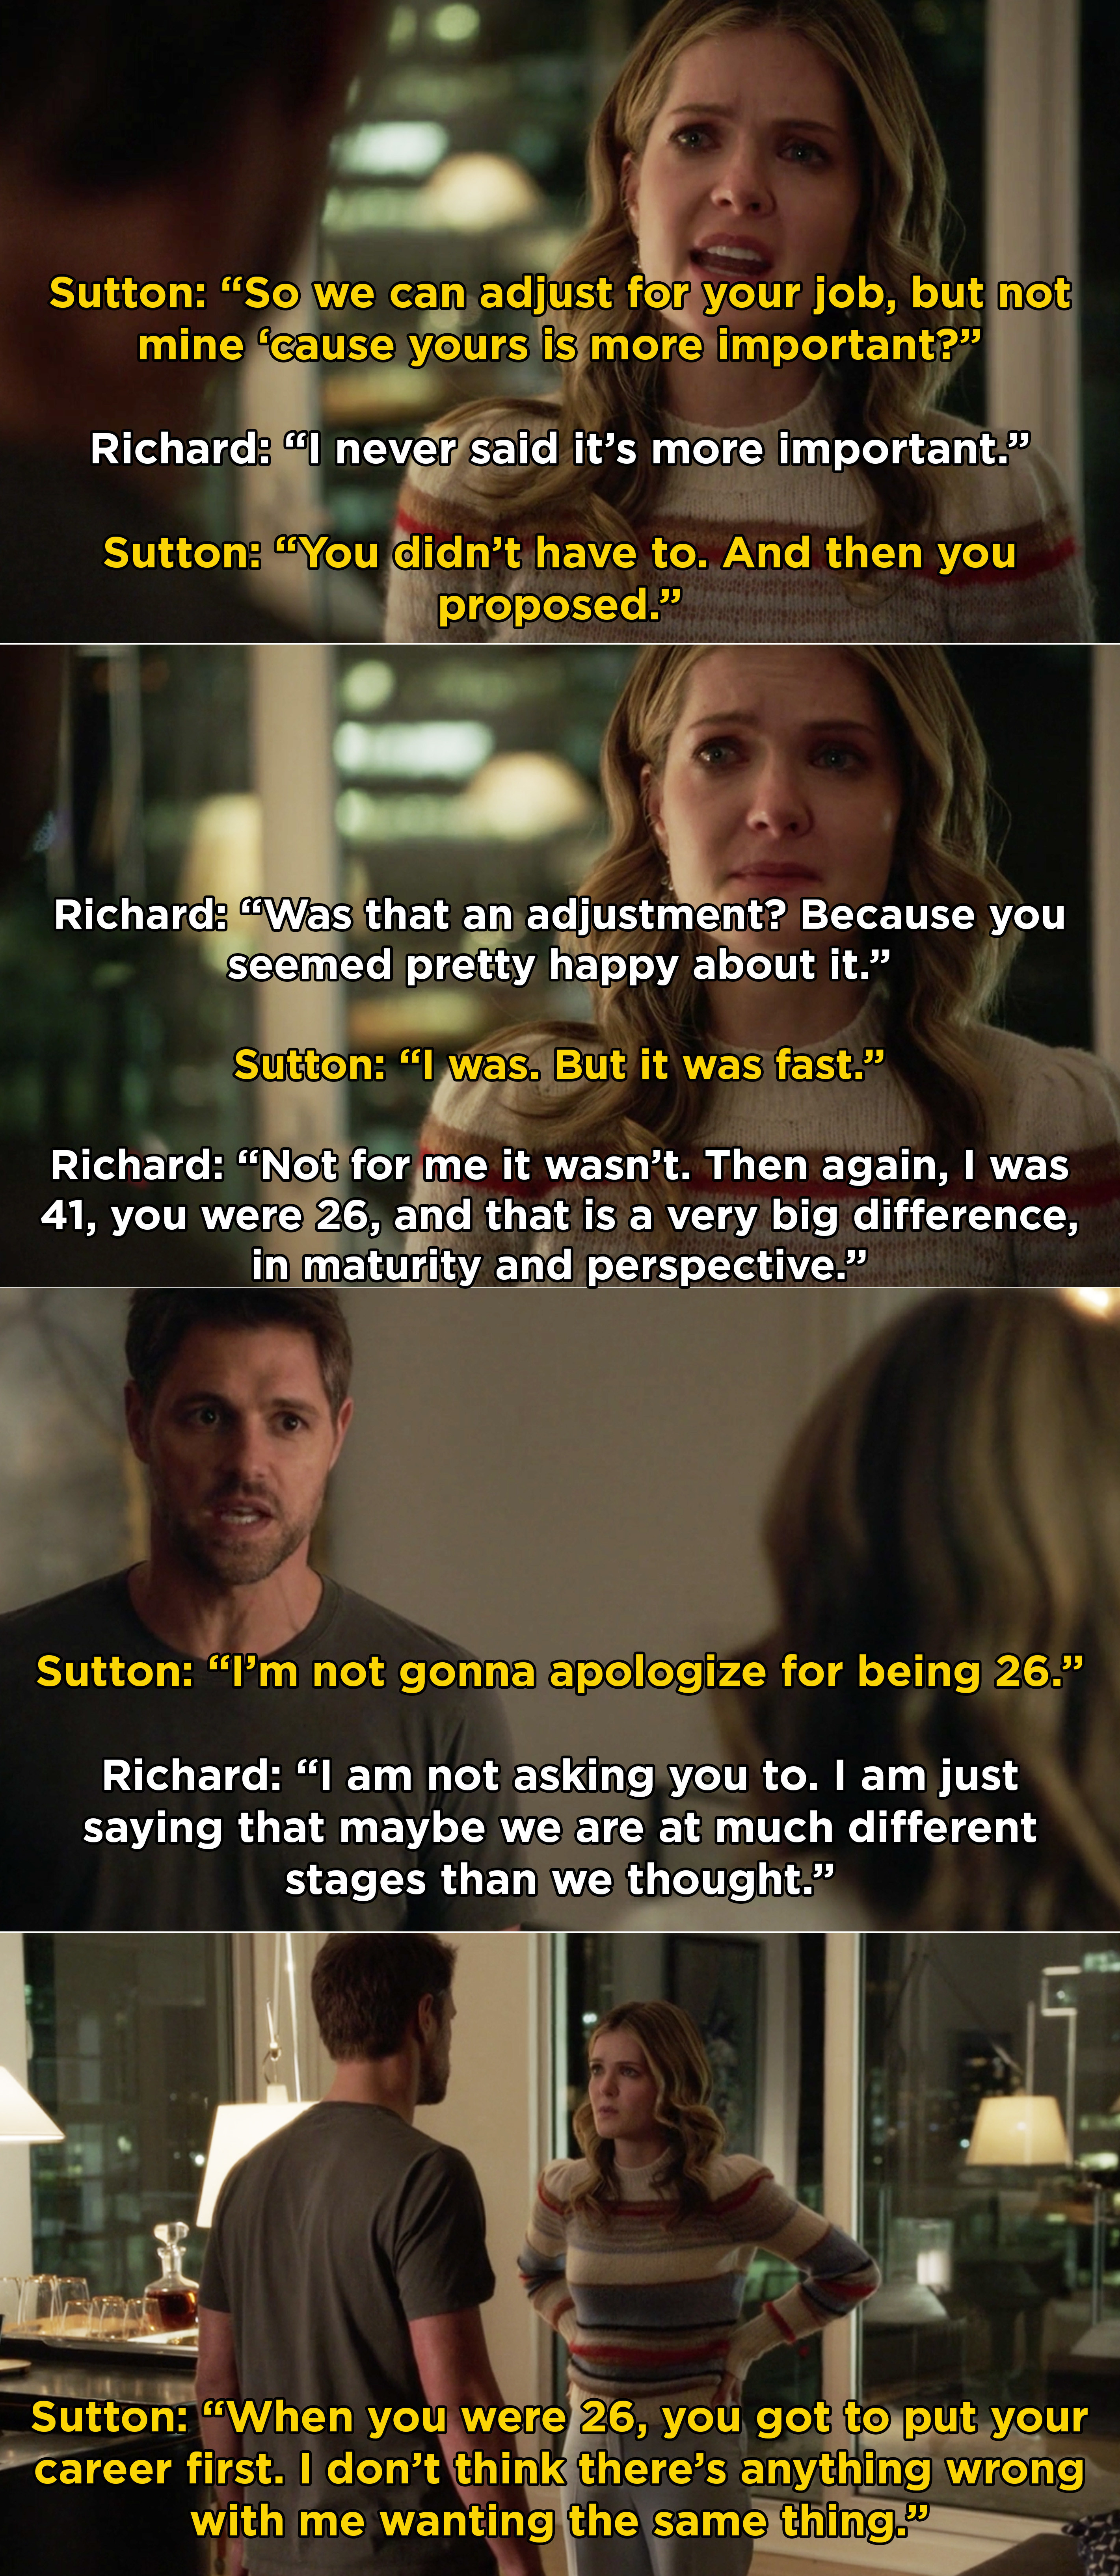 Sutton and Richard fighting and Sutton asking why he was able to put his career first at 26, but he's asking her to give up her dreams at 26